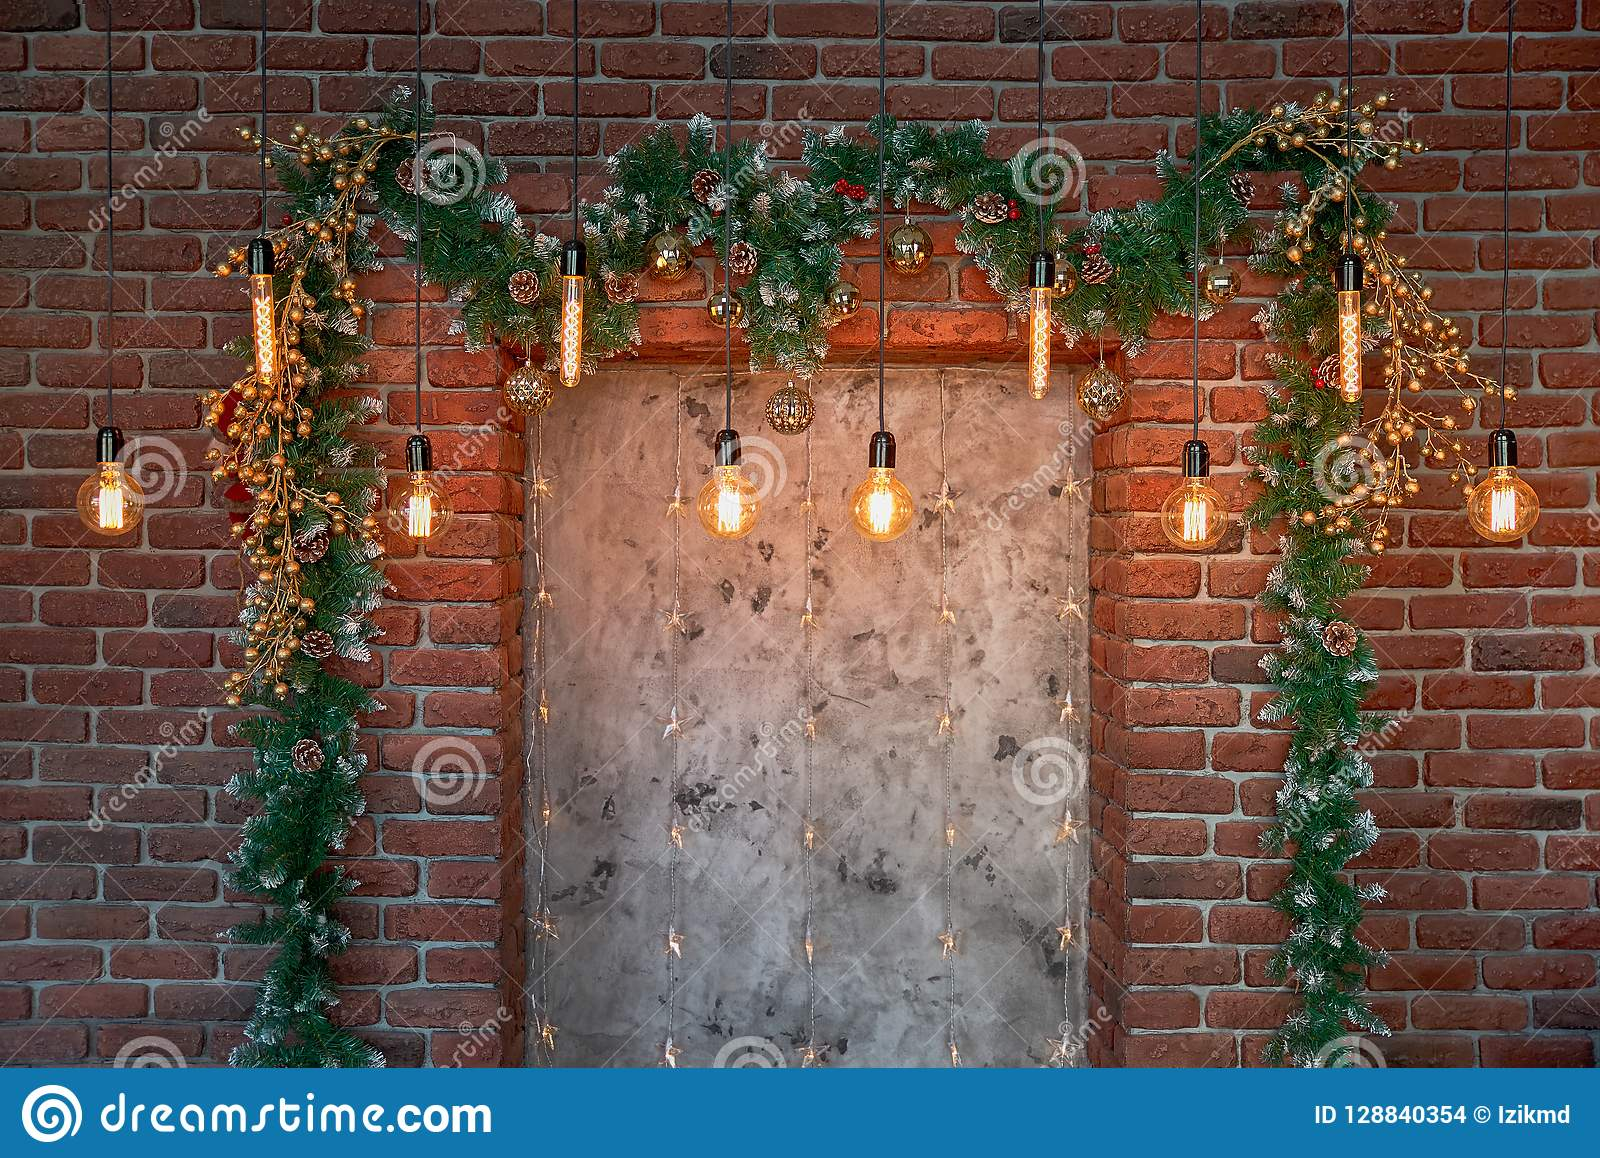 Christmas decorations over the decorative fireplace on the wall